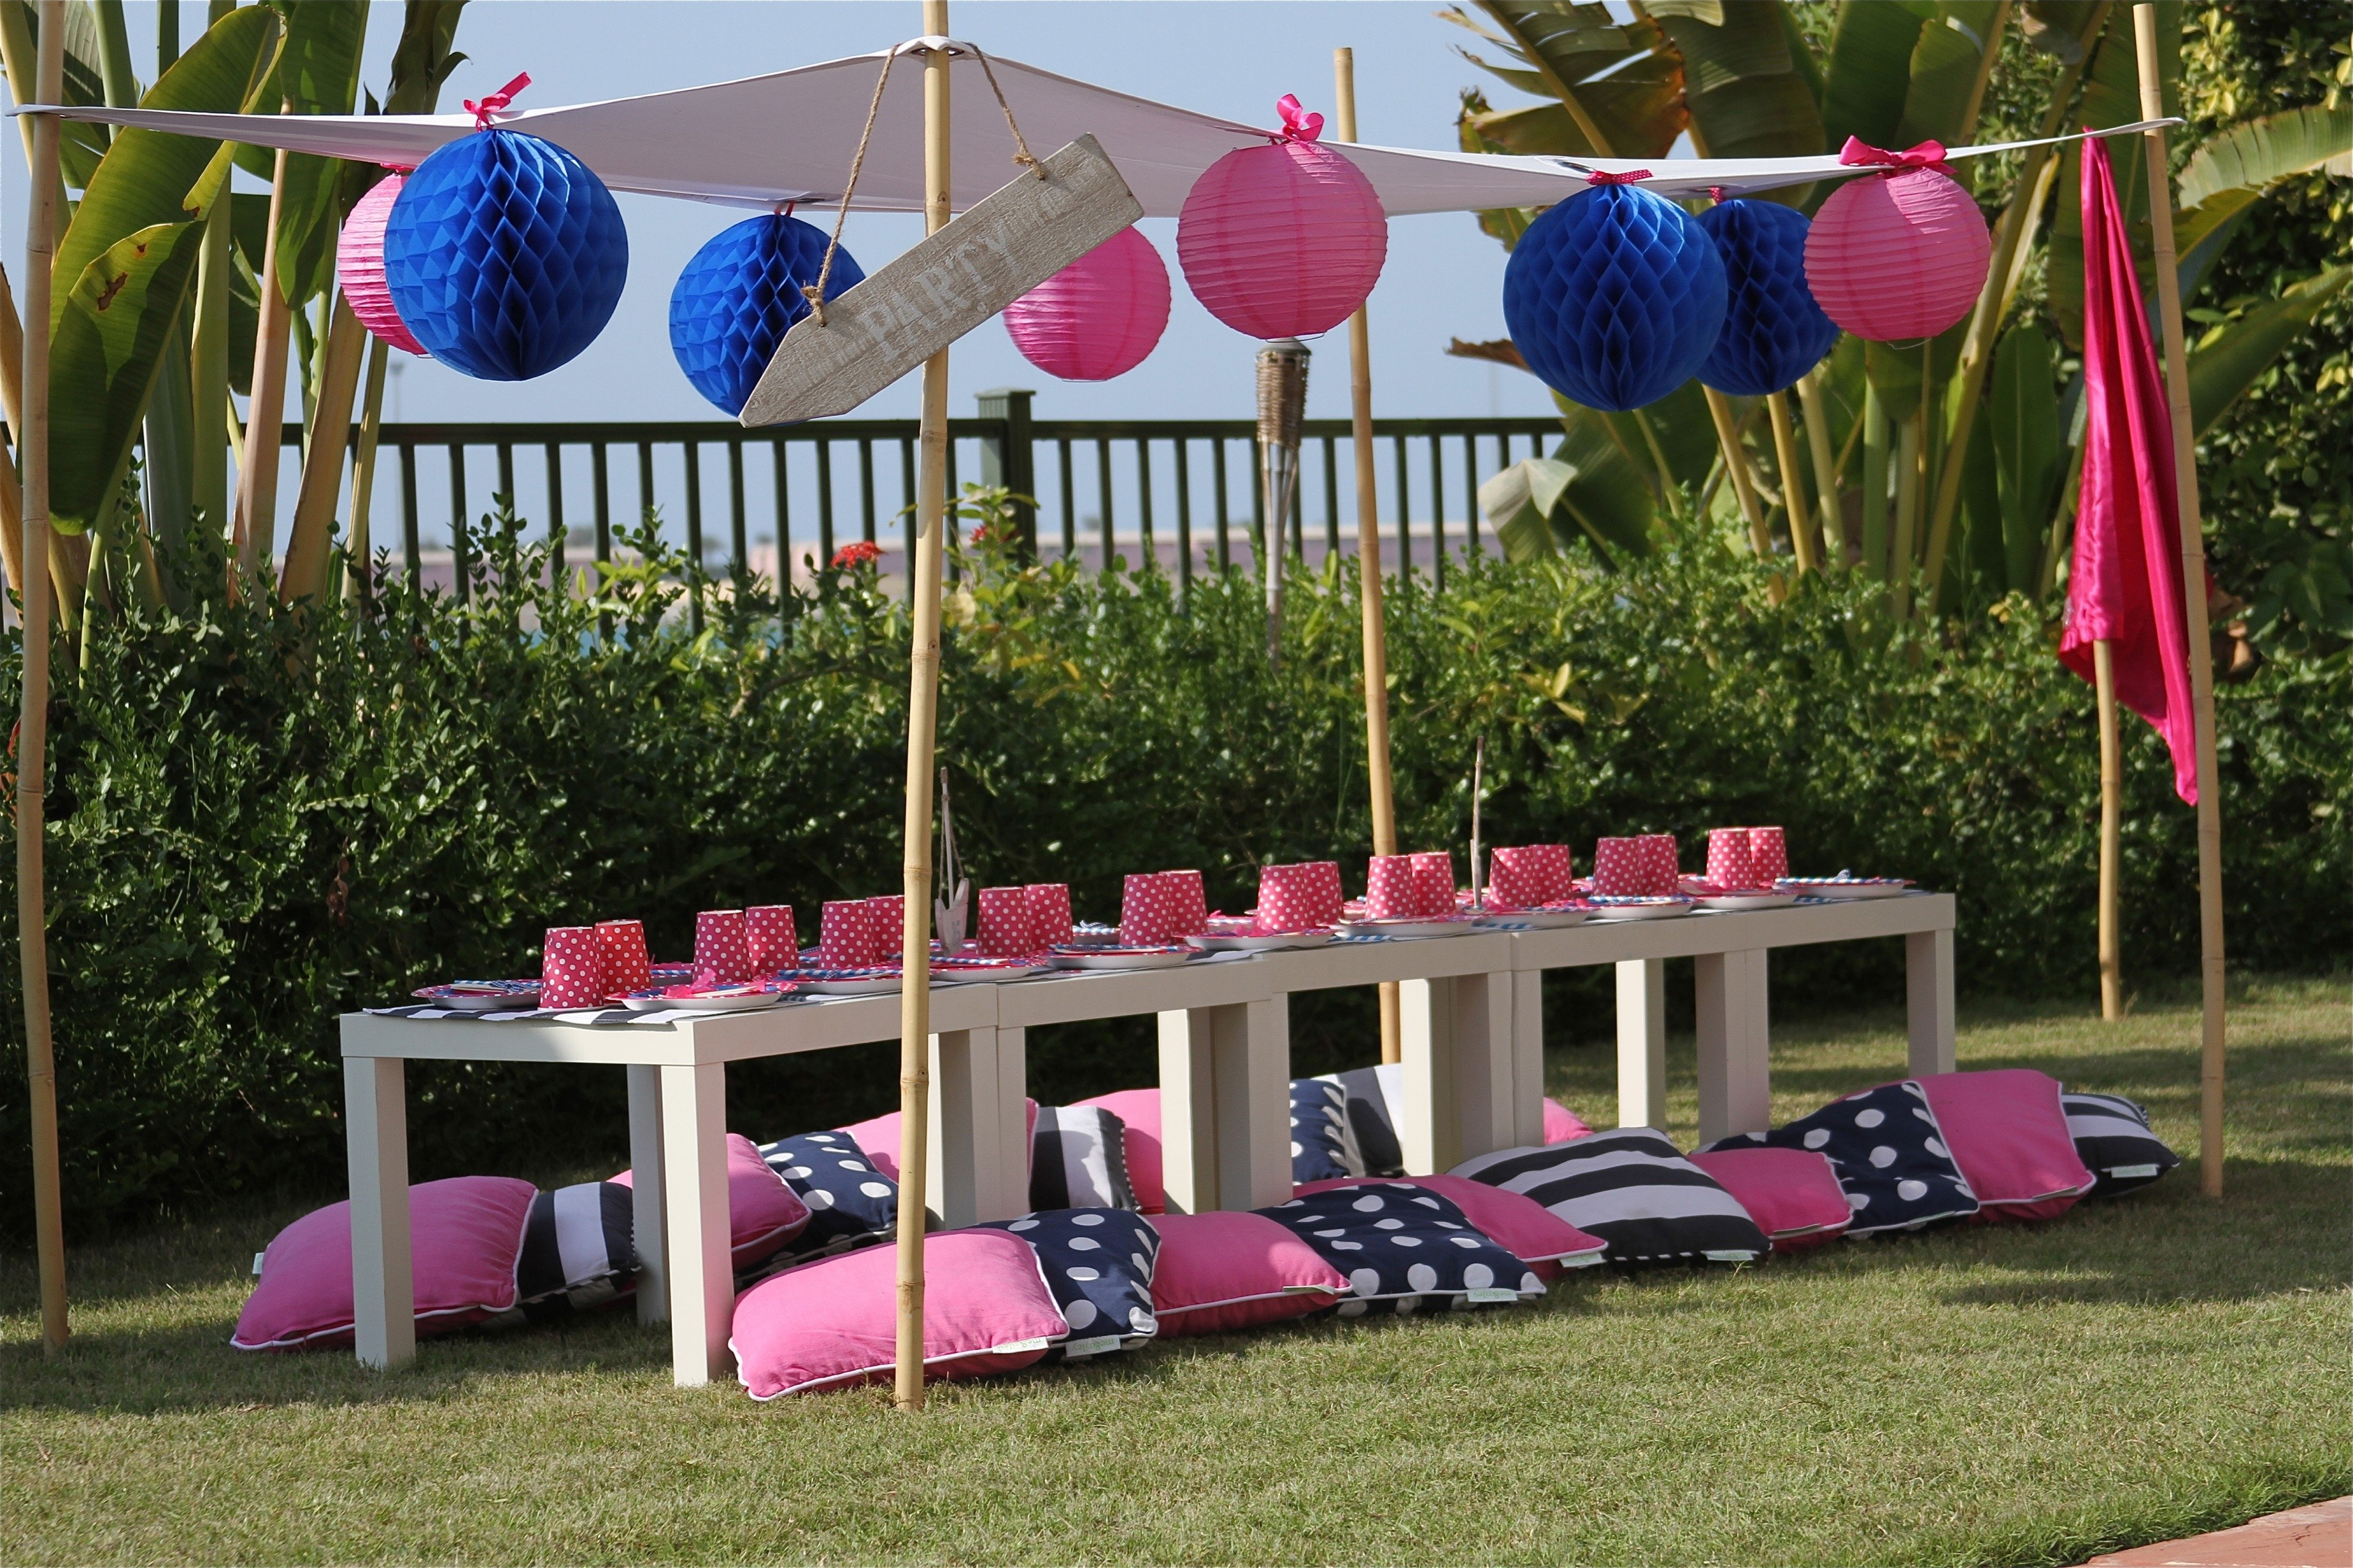 10 Wonderful Sweet 16 Pool Party Ideas pool party decorations modern pool party decorations birthday 2020